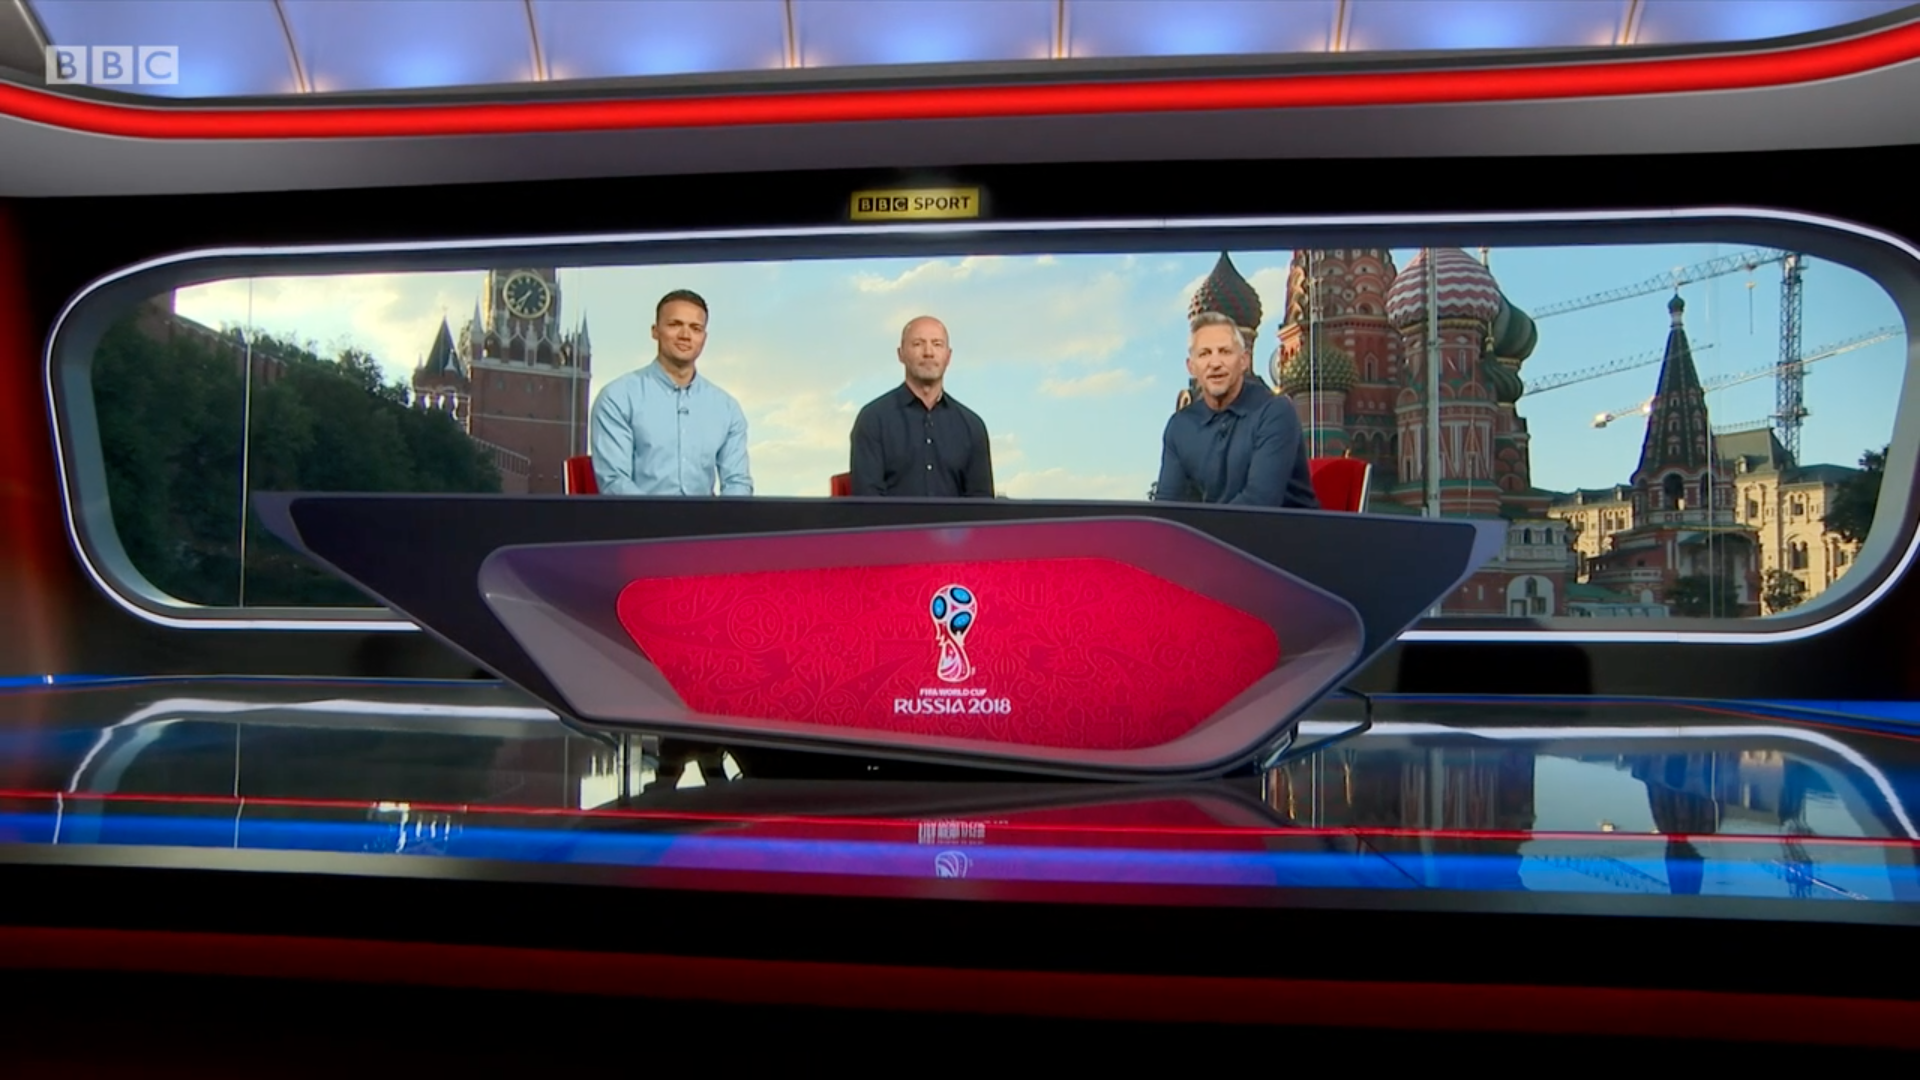 The BBC World Cup 2018 presenting team in the Moscow studio.